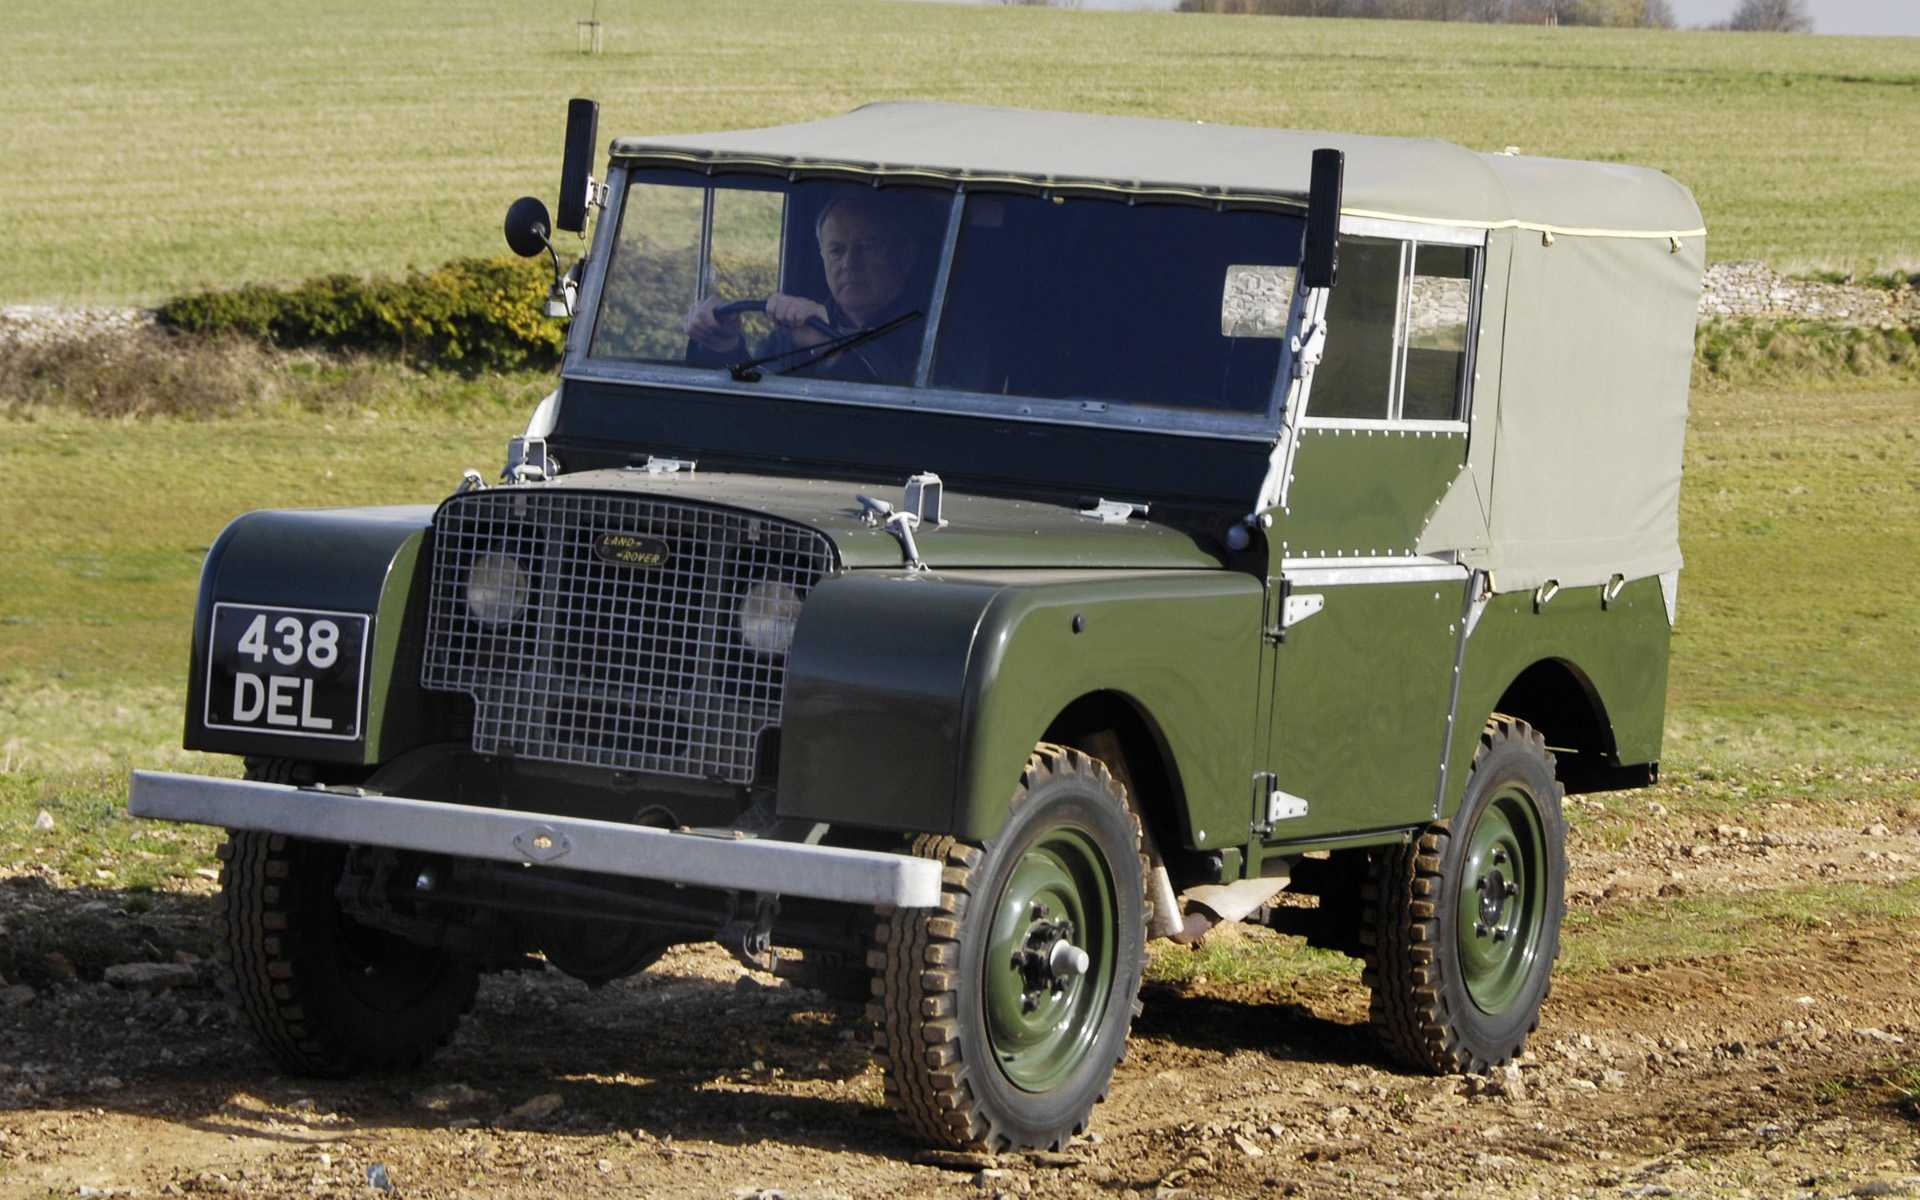 60 Years and Counting the Land Rover Defender Continues to Shine